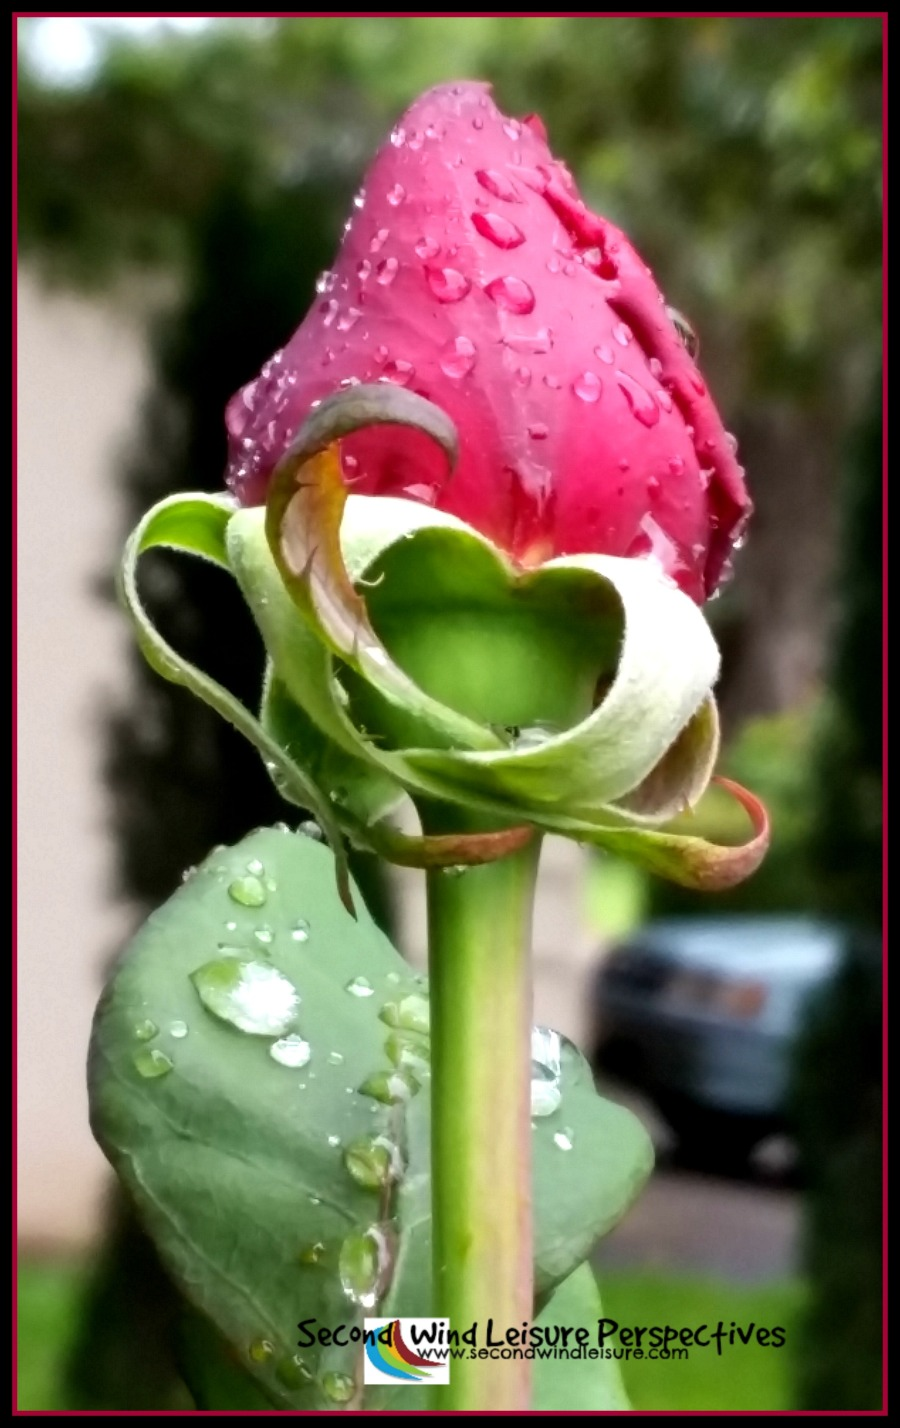 Raindrops sit delicately atop a spring rose bud